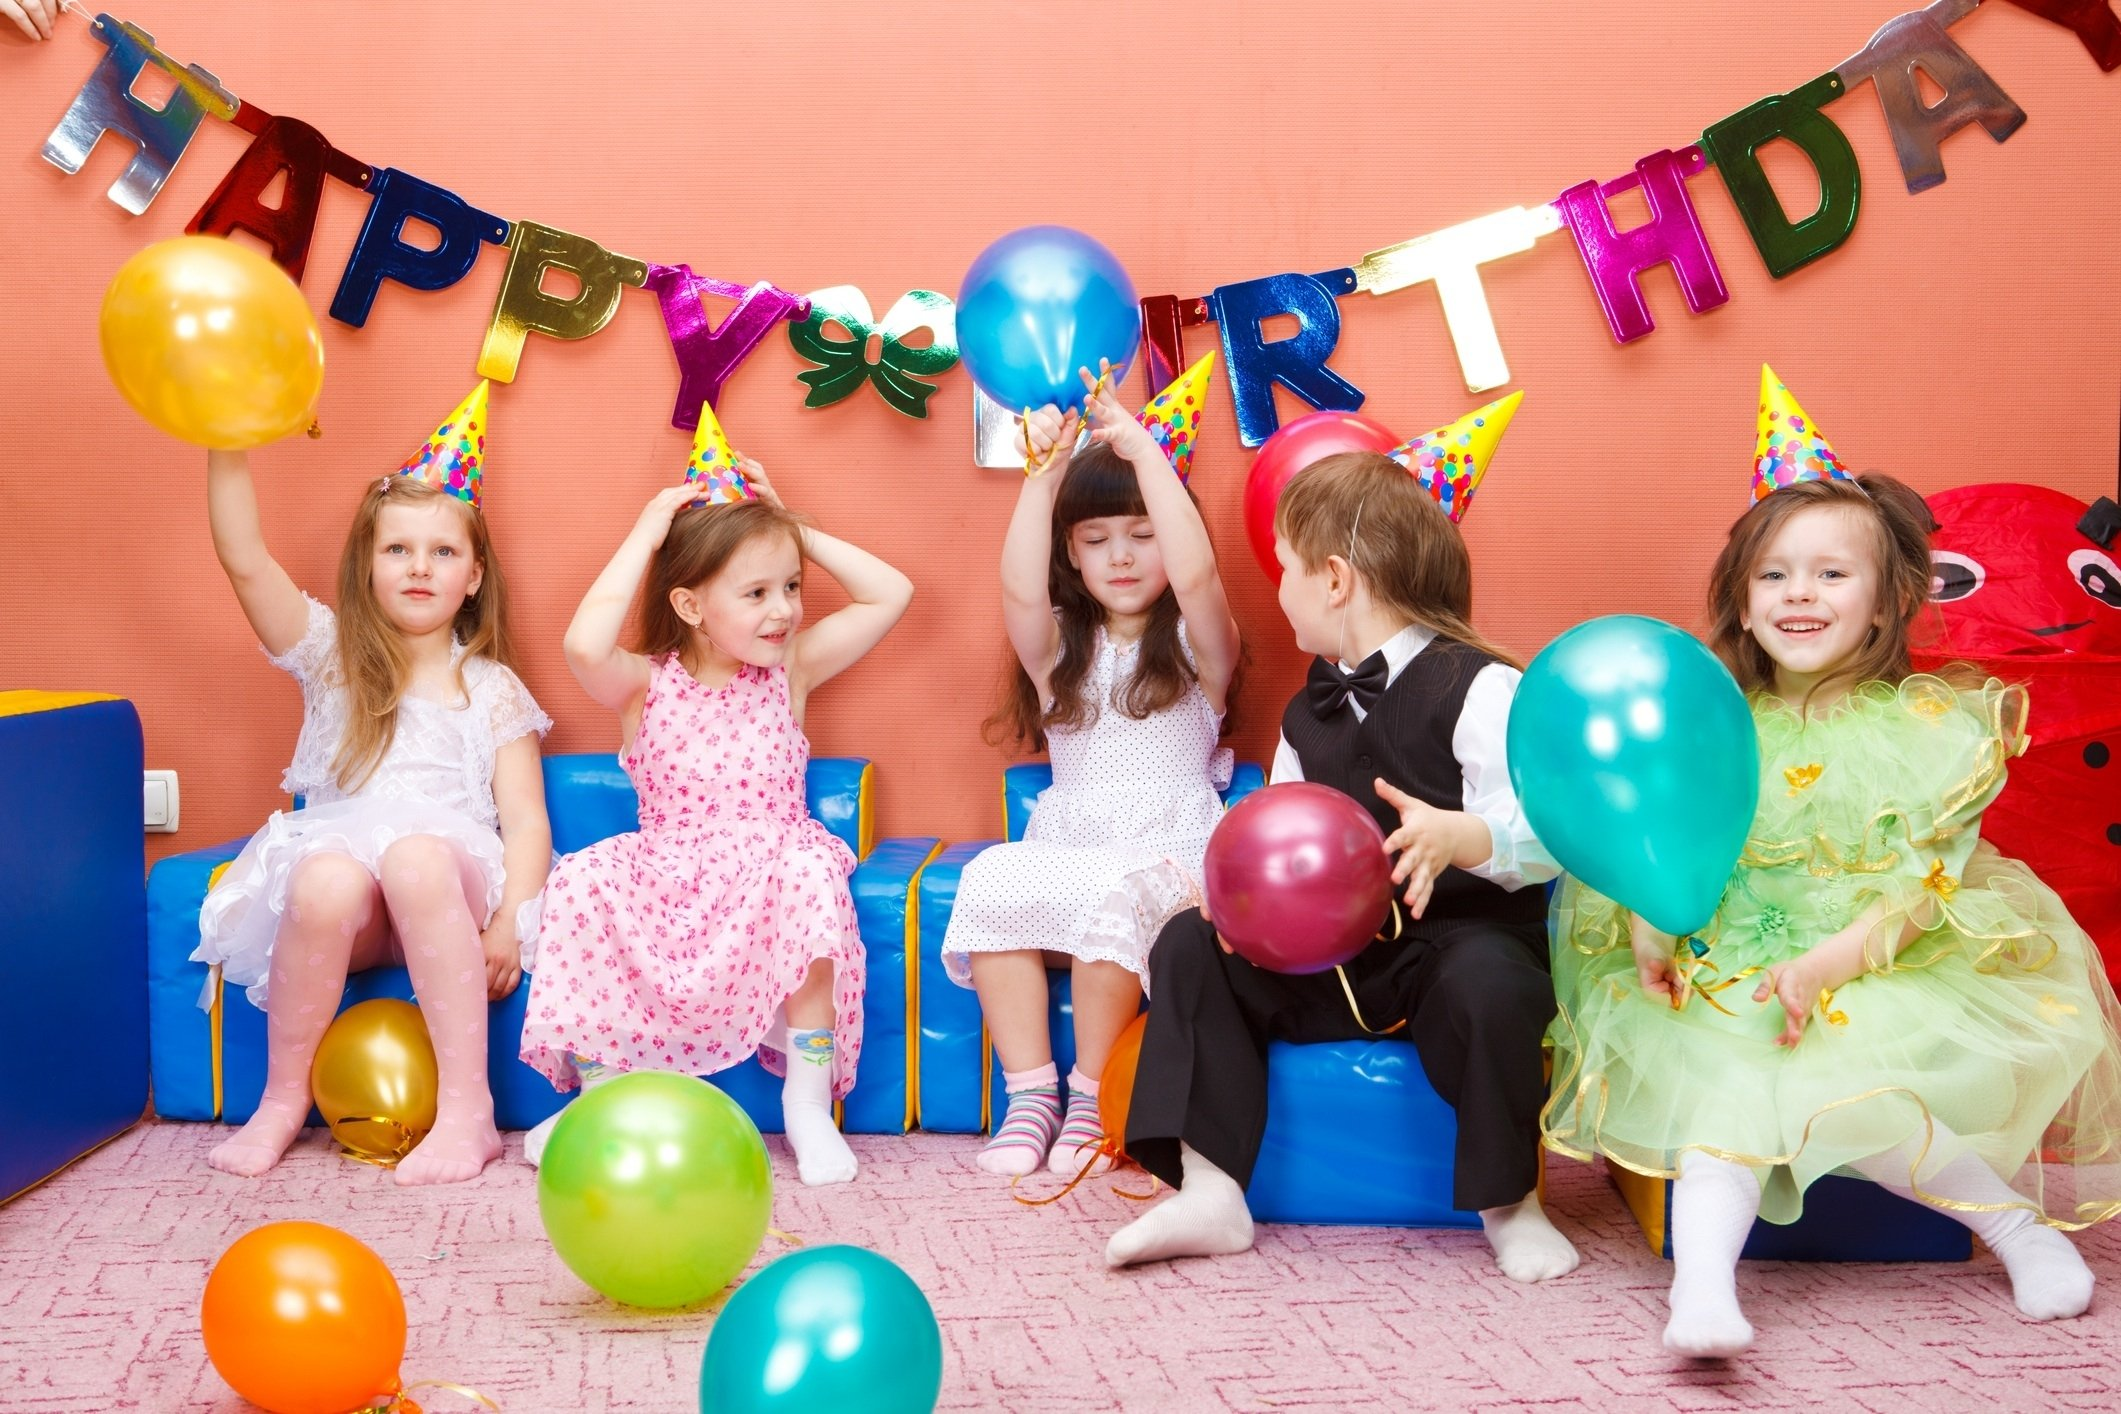 45 awesome 11 & 12 year old birthday party ideas | birthday inspire